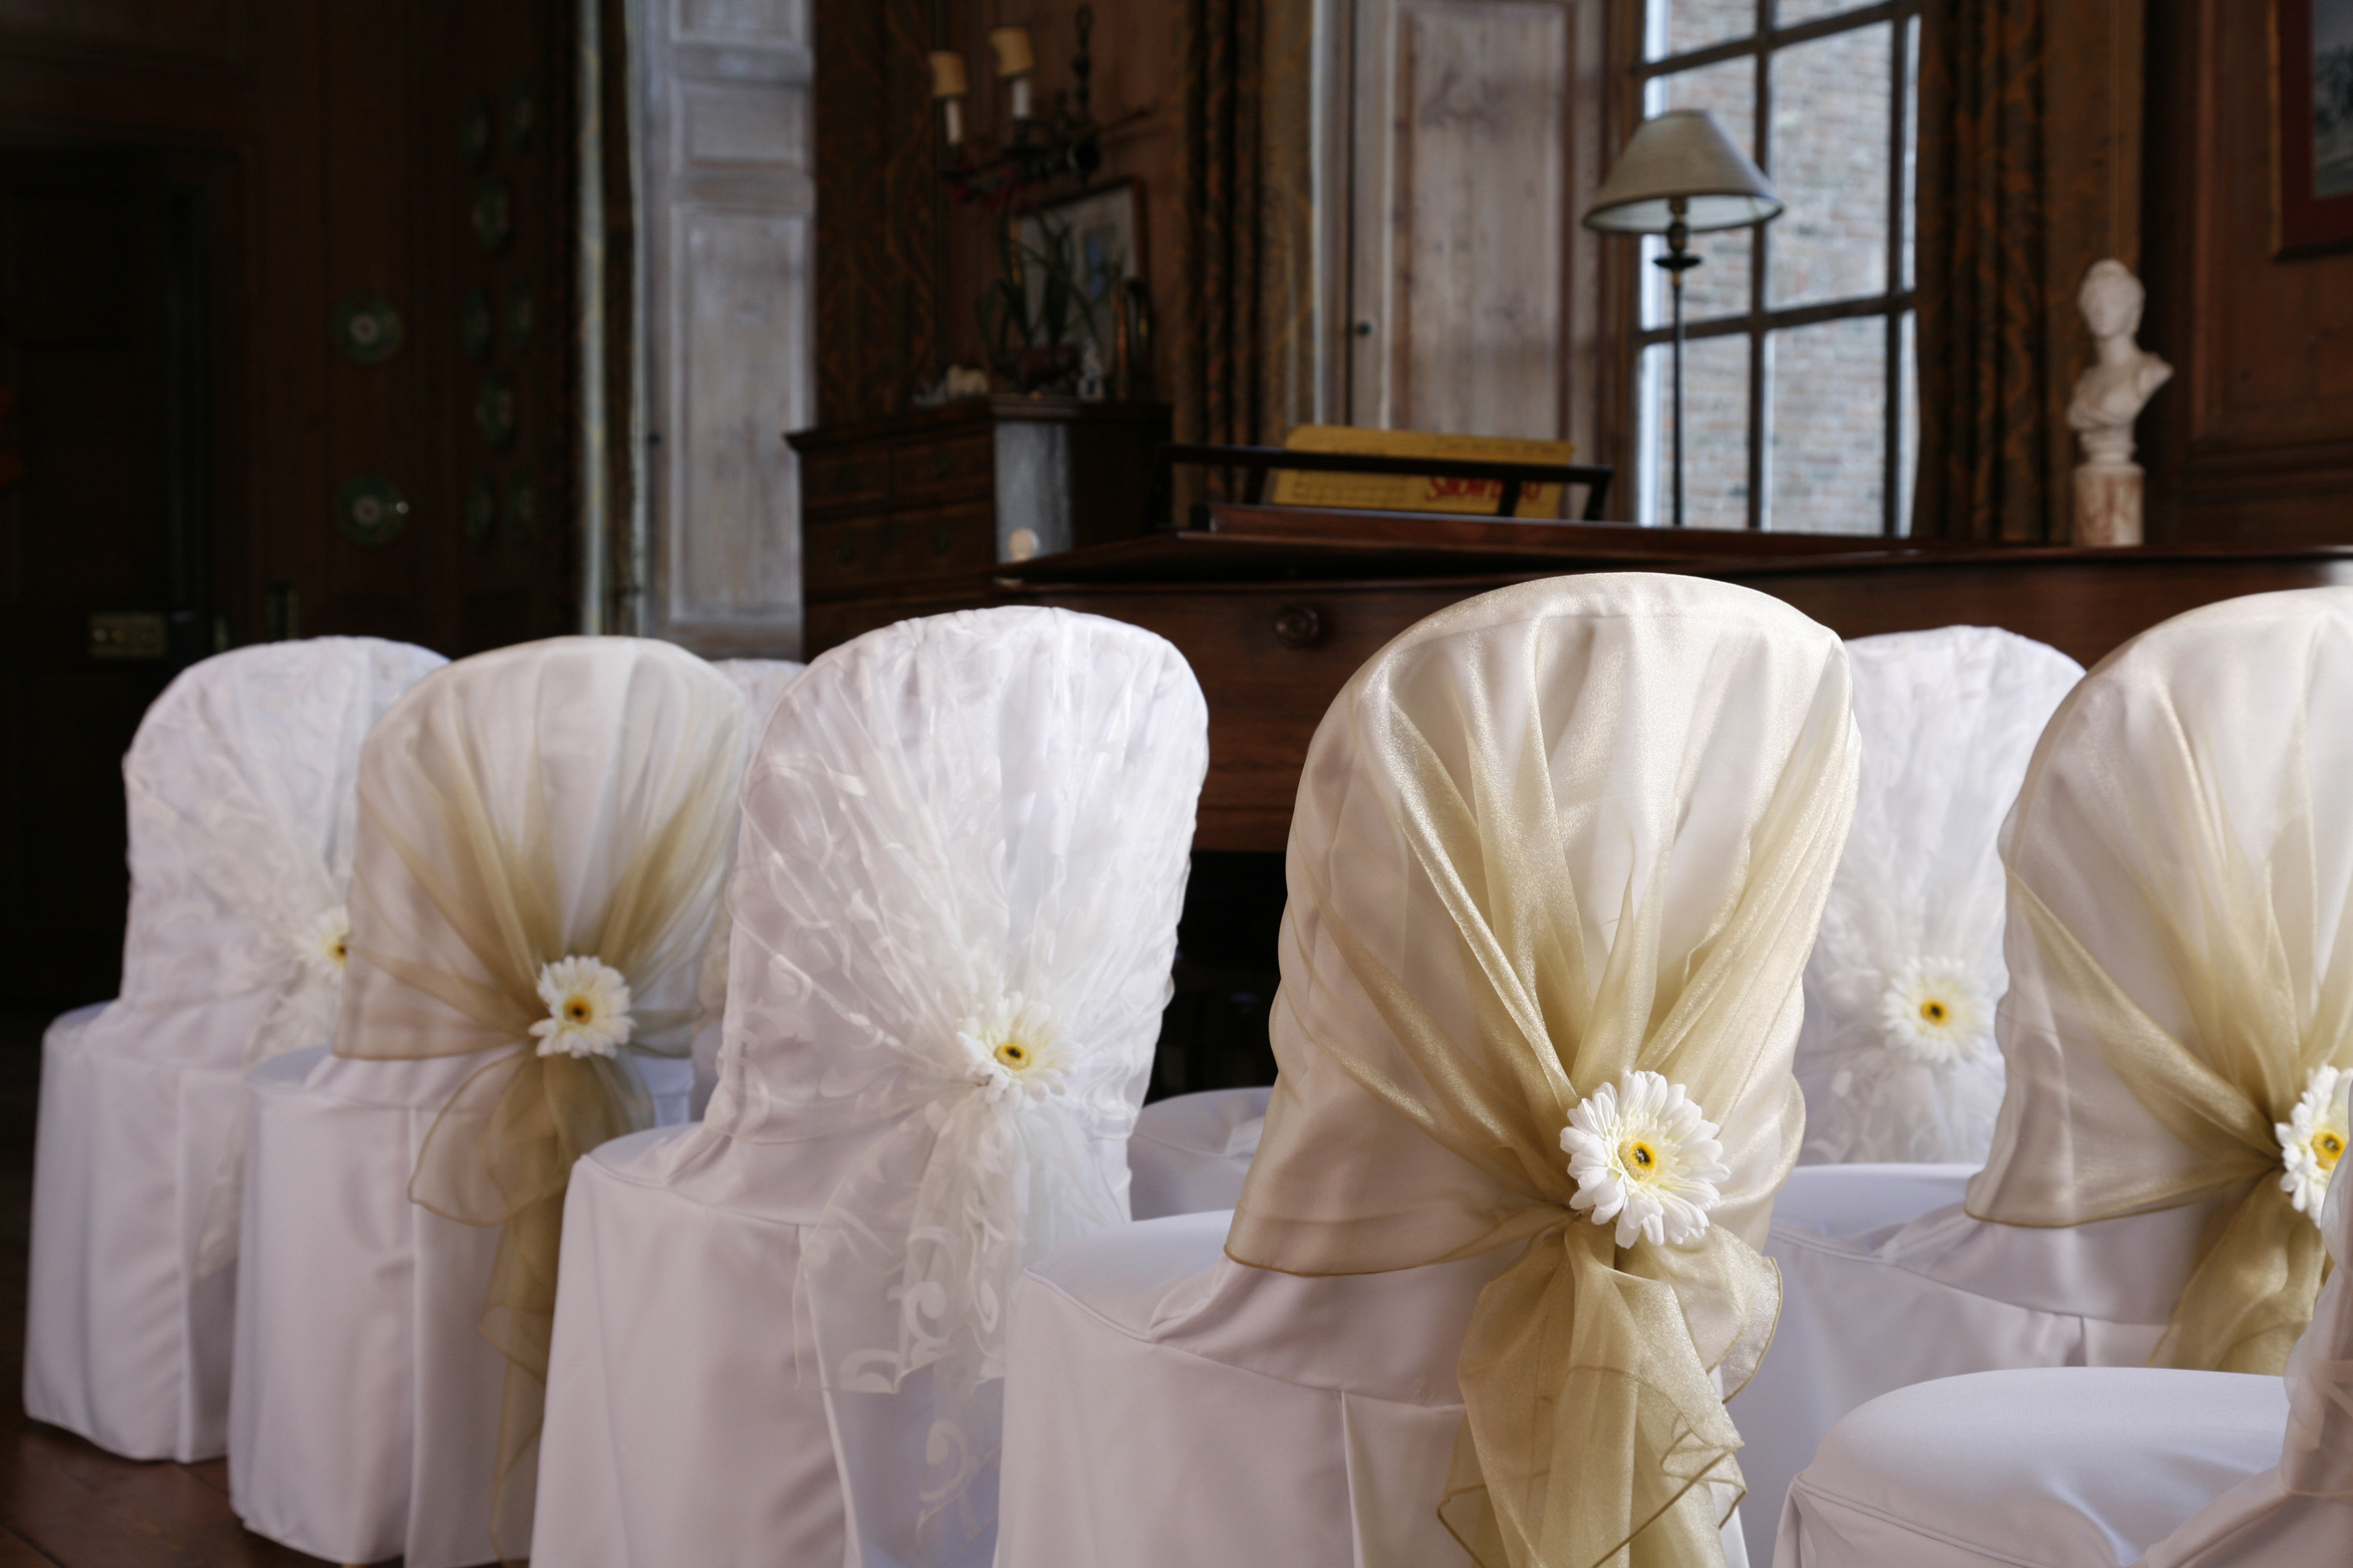 wedding chair covers for sale australia green lawn chairs new linen 2012 2013 weddings table angels